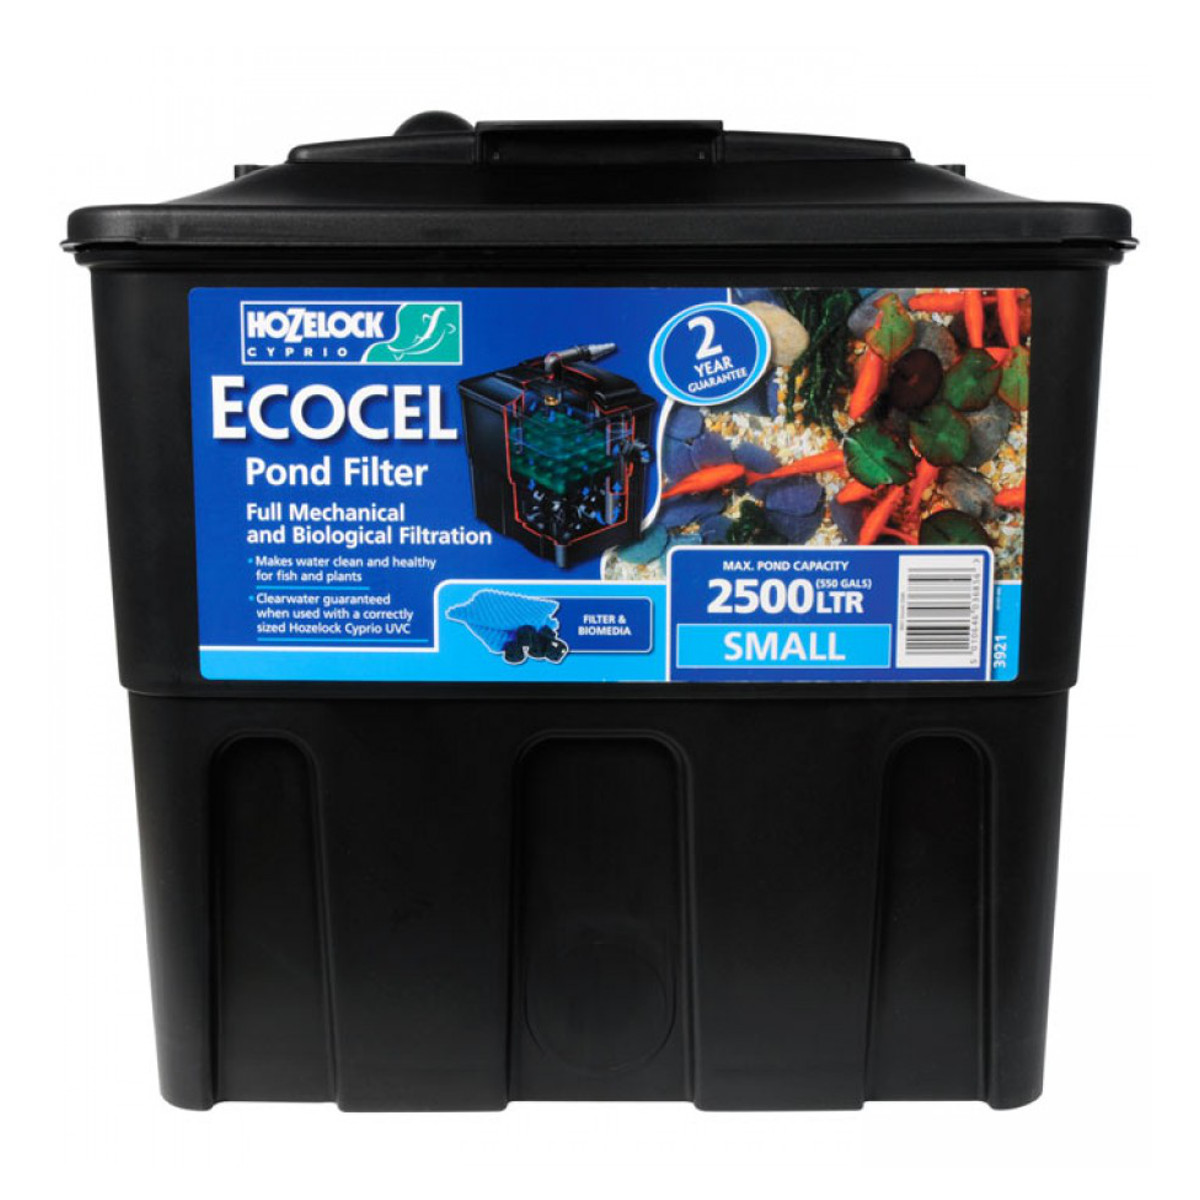 Hozelock ecocel garden pond water filter systems koi for Pond water filtration systems